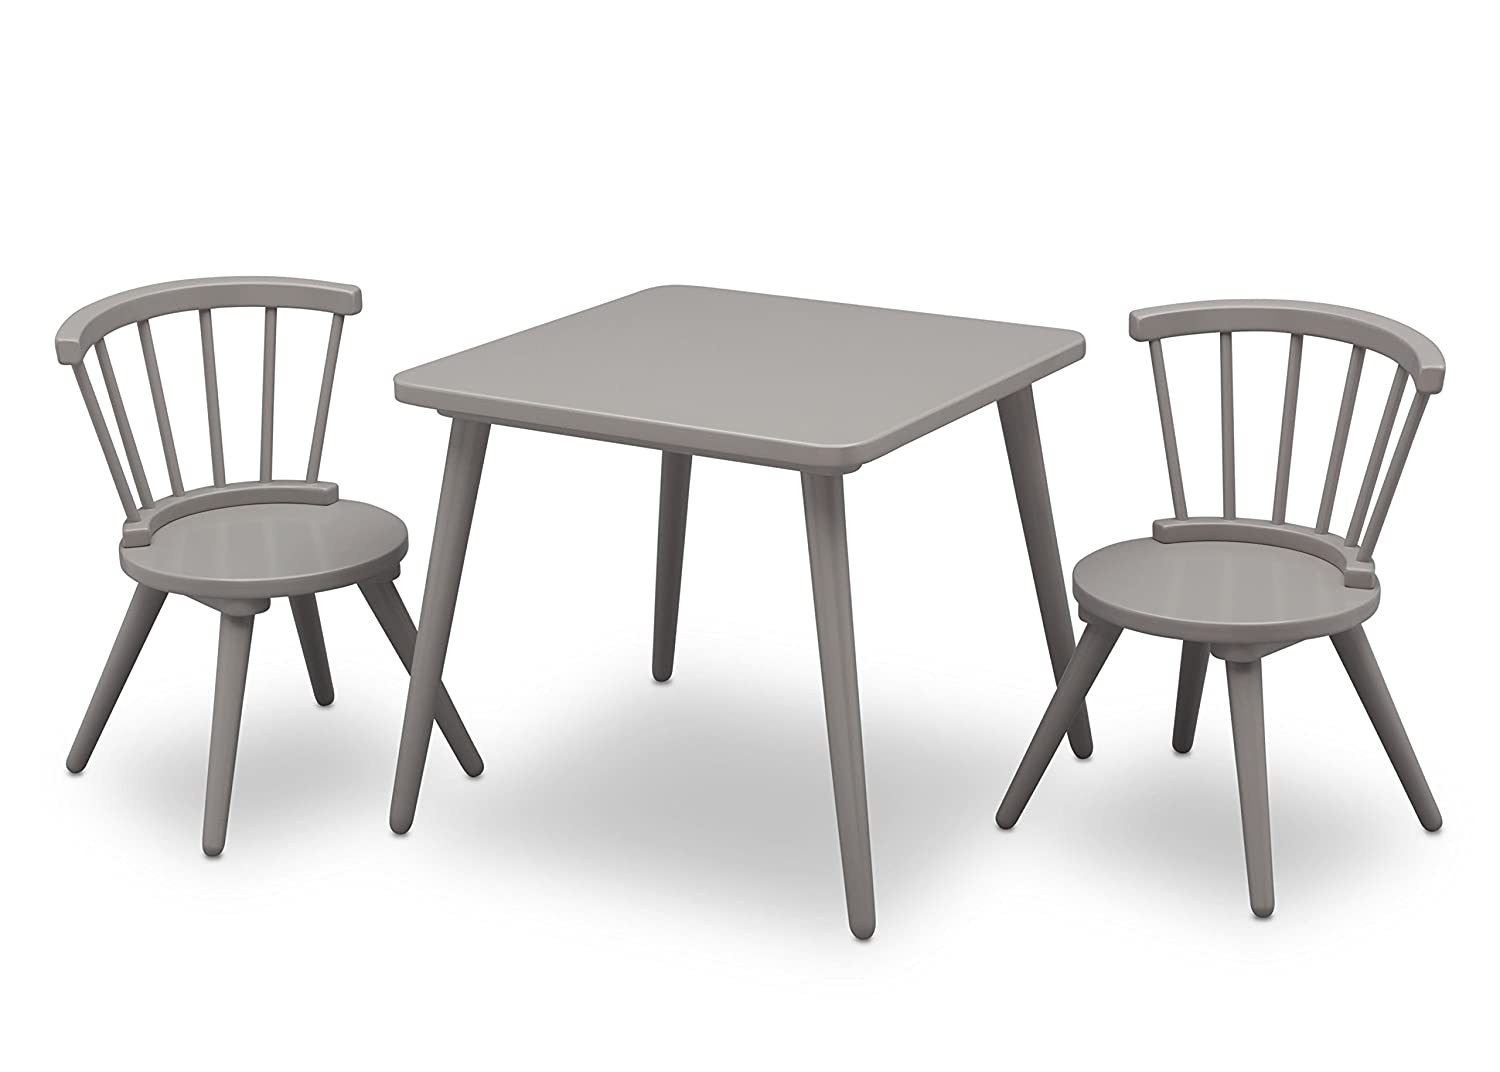 sc 1 st  Amazon.com : windsor table and chair set - pezcame.com